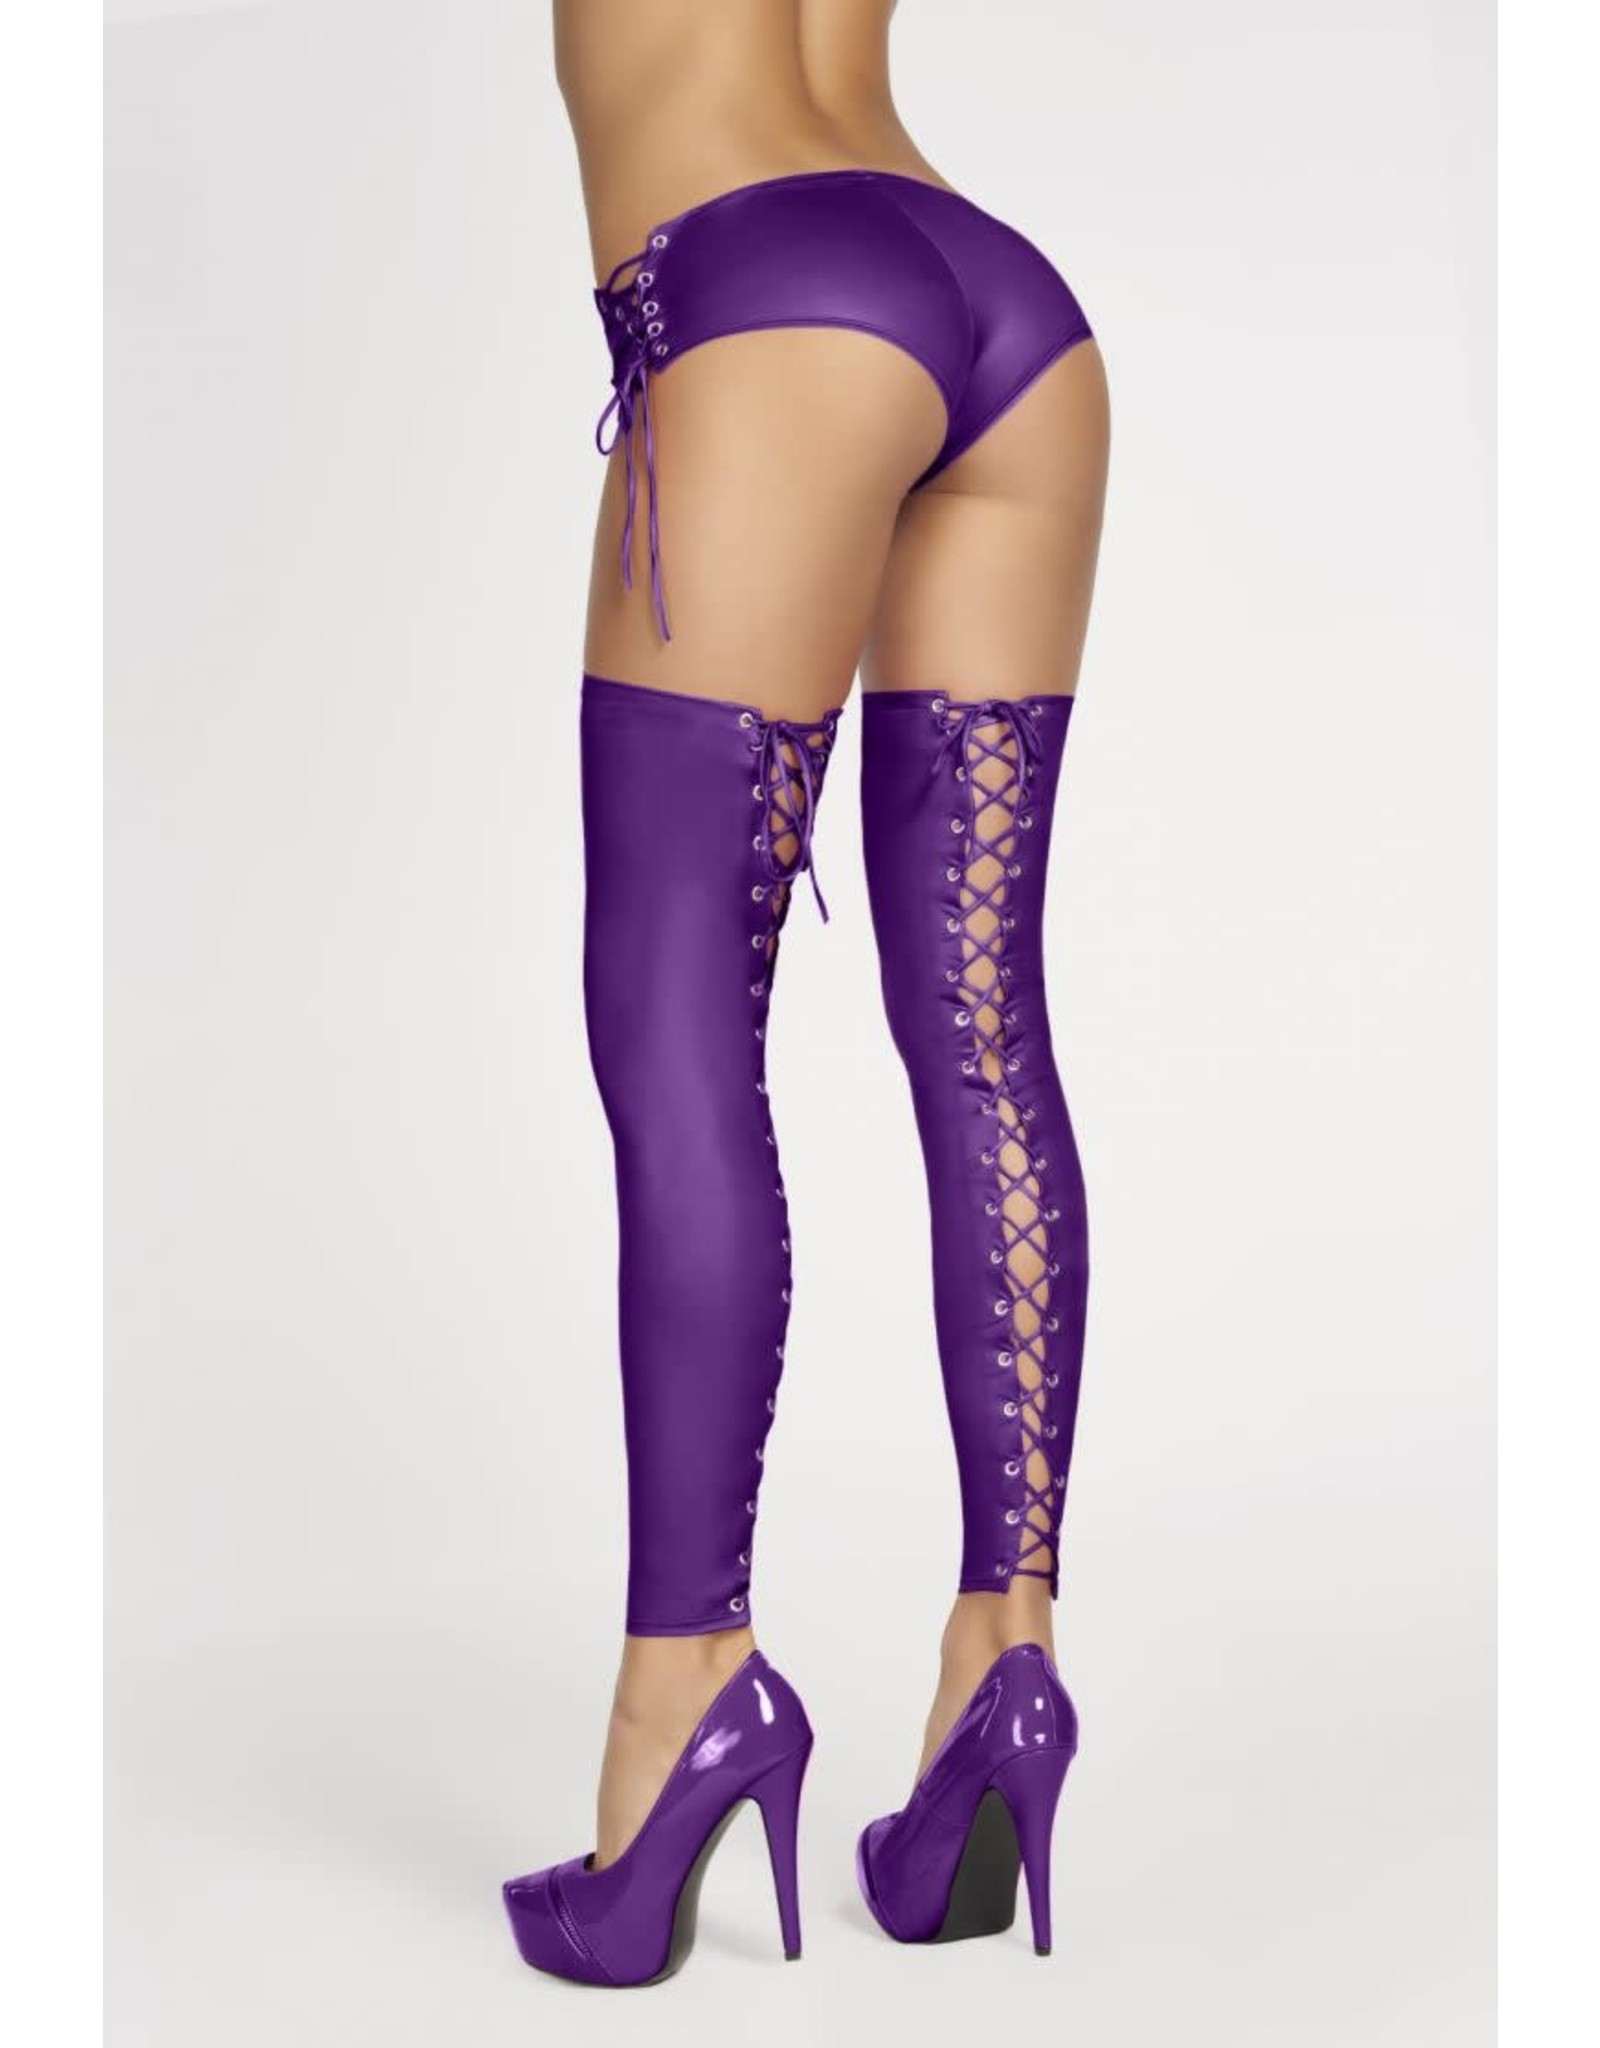 7 HEAVEN - SEXY LEGGINGS WITH LACING AT THE BACK - L/XL